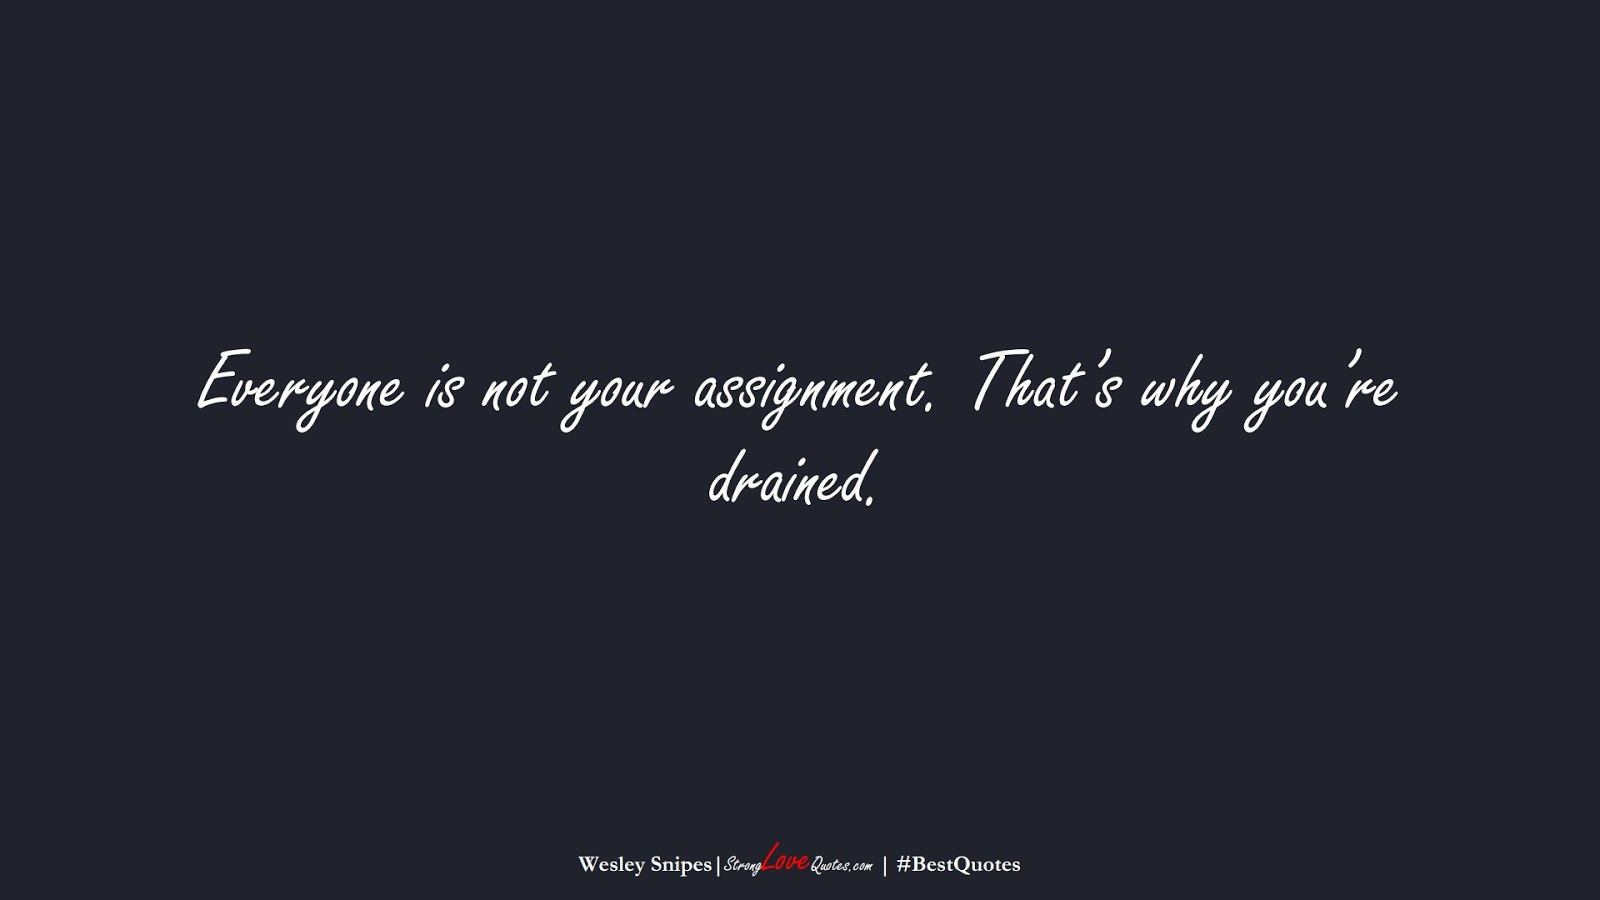 Everyone is not your assignment. That's why you're drained. (Wesley Snipes);  #BestQuotes